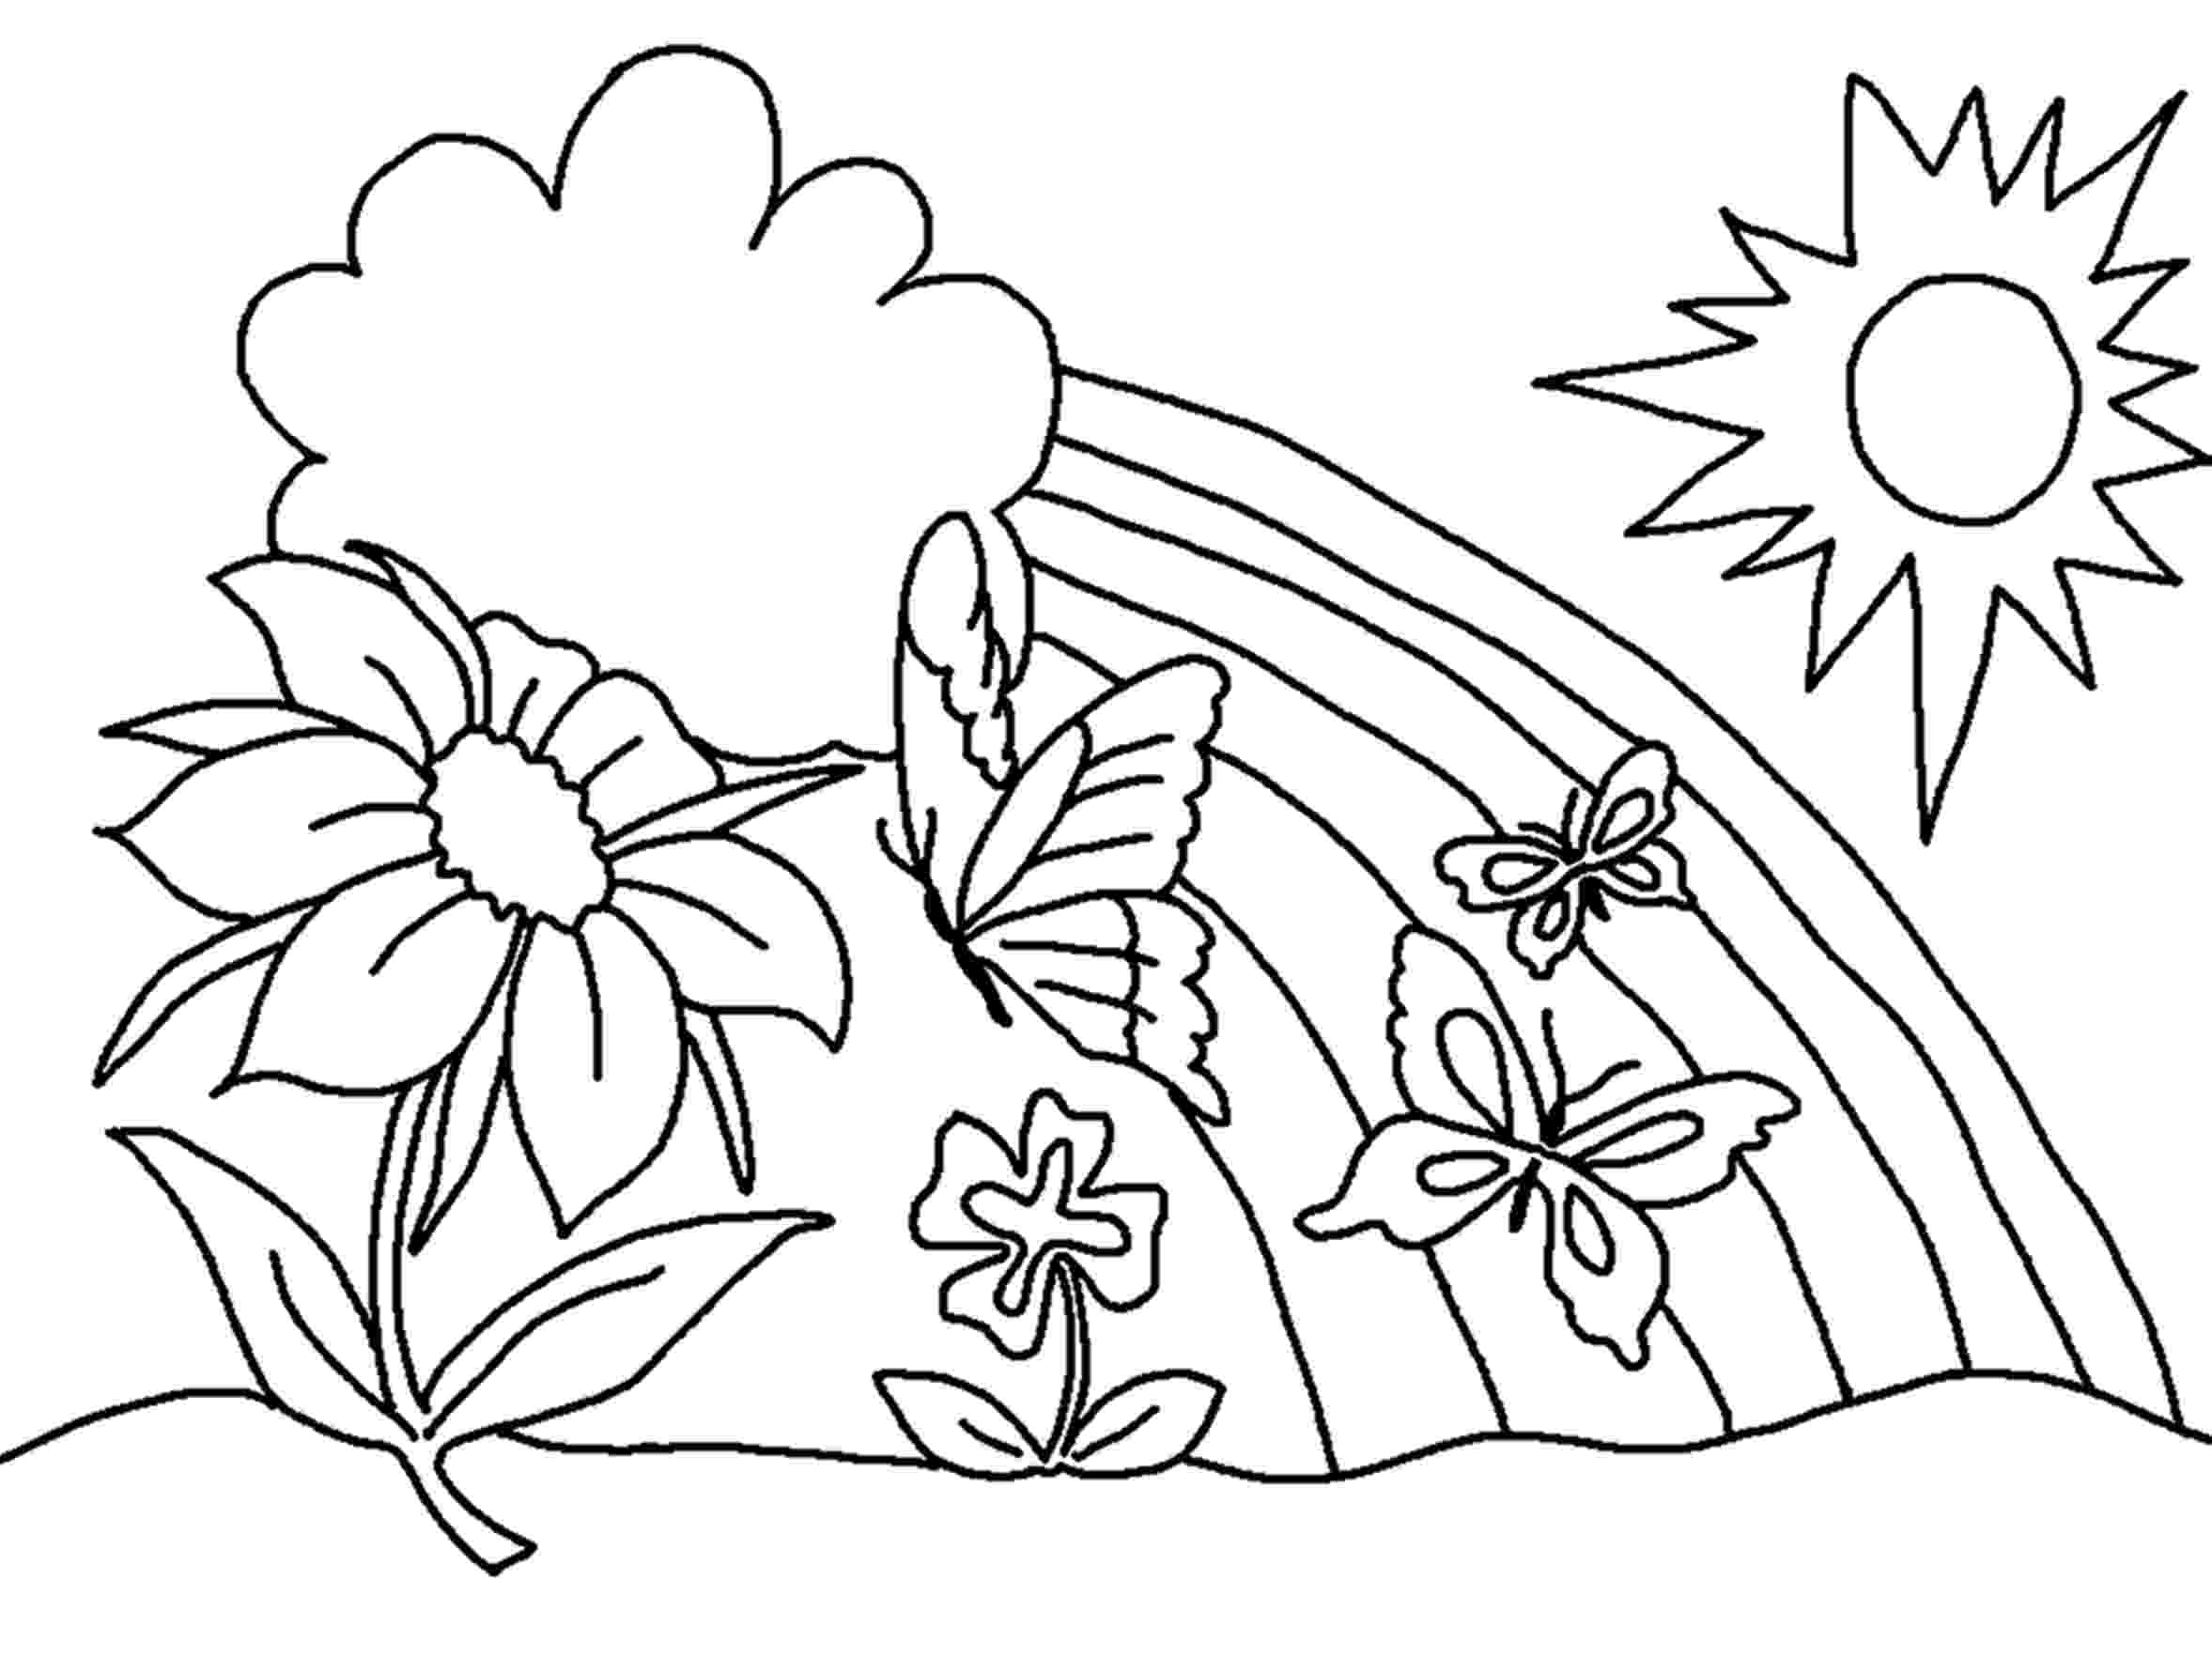 flower coloring pages printables free printable flower coloring pages for kids best printables coloring flower pages 1 1